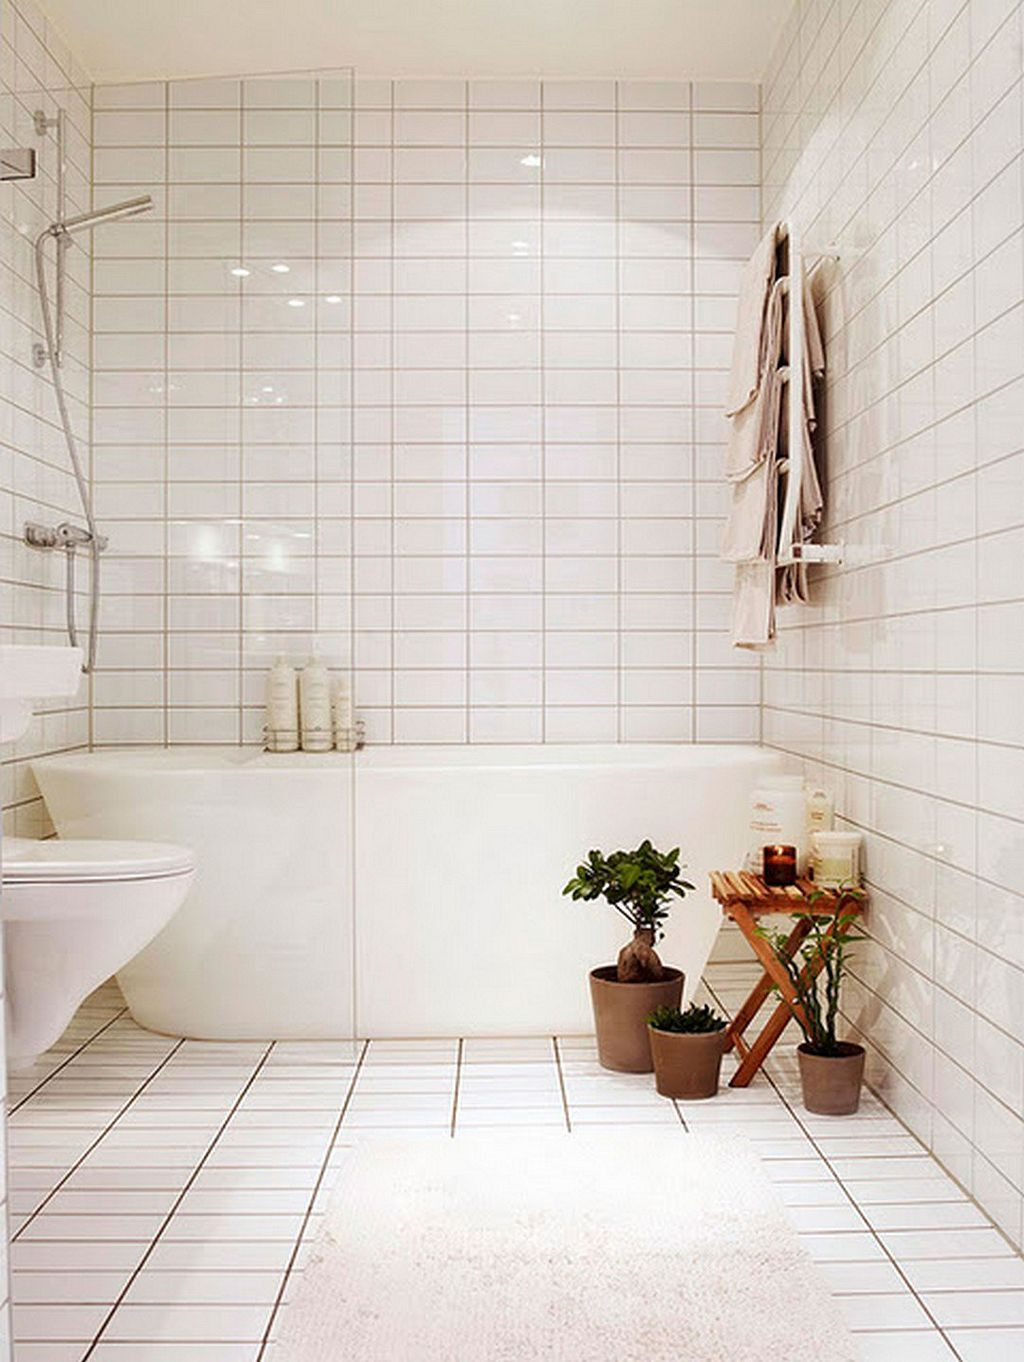 Tiny Bathroom Tub Shower Combo Remodeling Ideas Bathroom Tub Shower Tub Shower Combo Small Bathroom